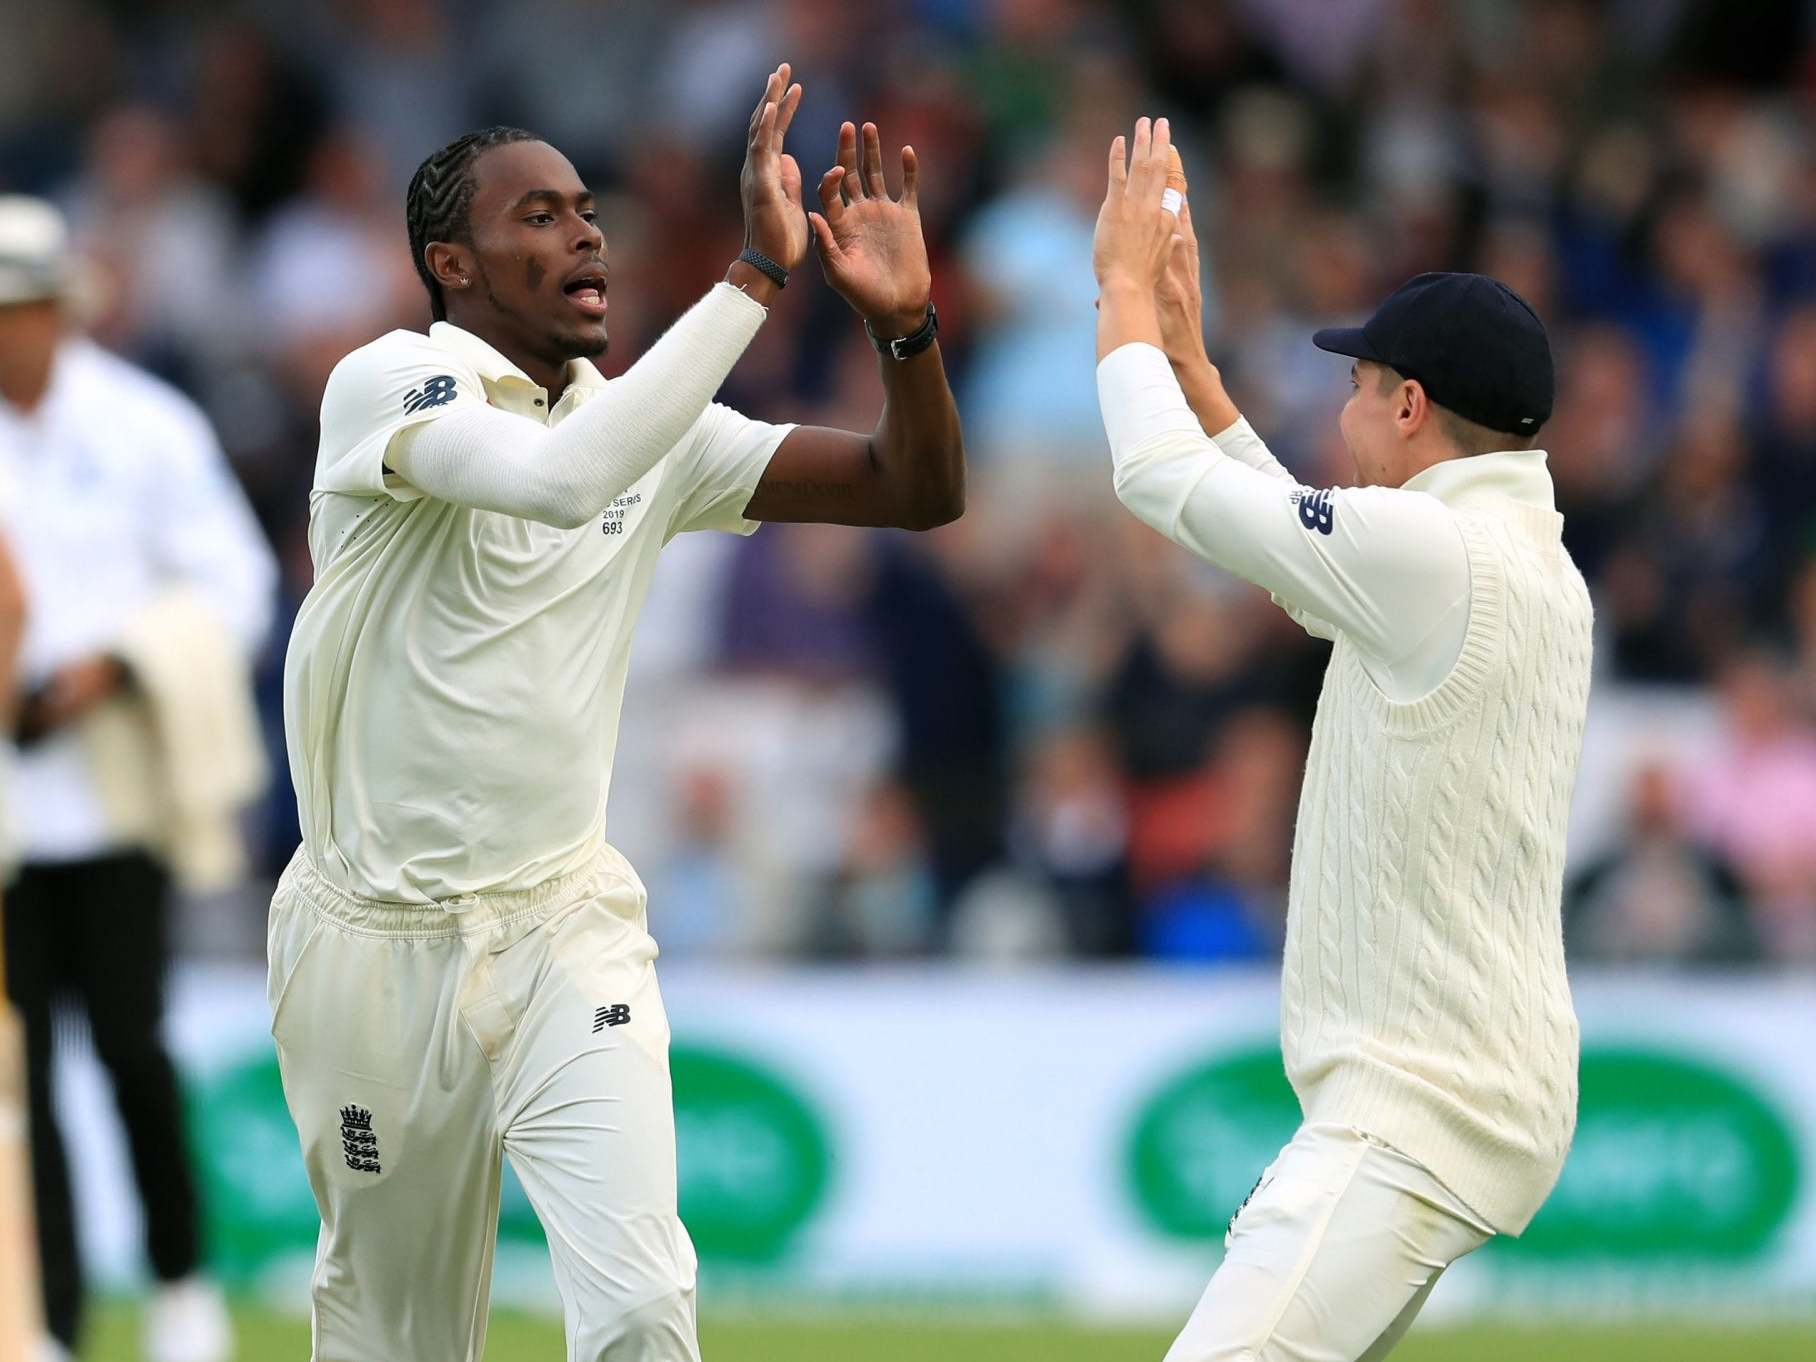 Ashes 2019 LIVE: Jofra Archer takes key wicket of David Warner - latest score and ball-by-ball updates